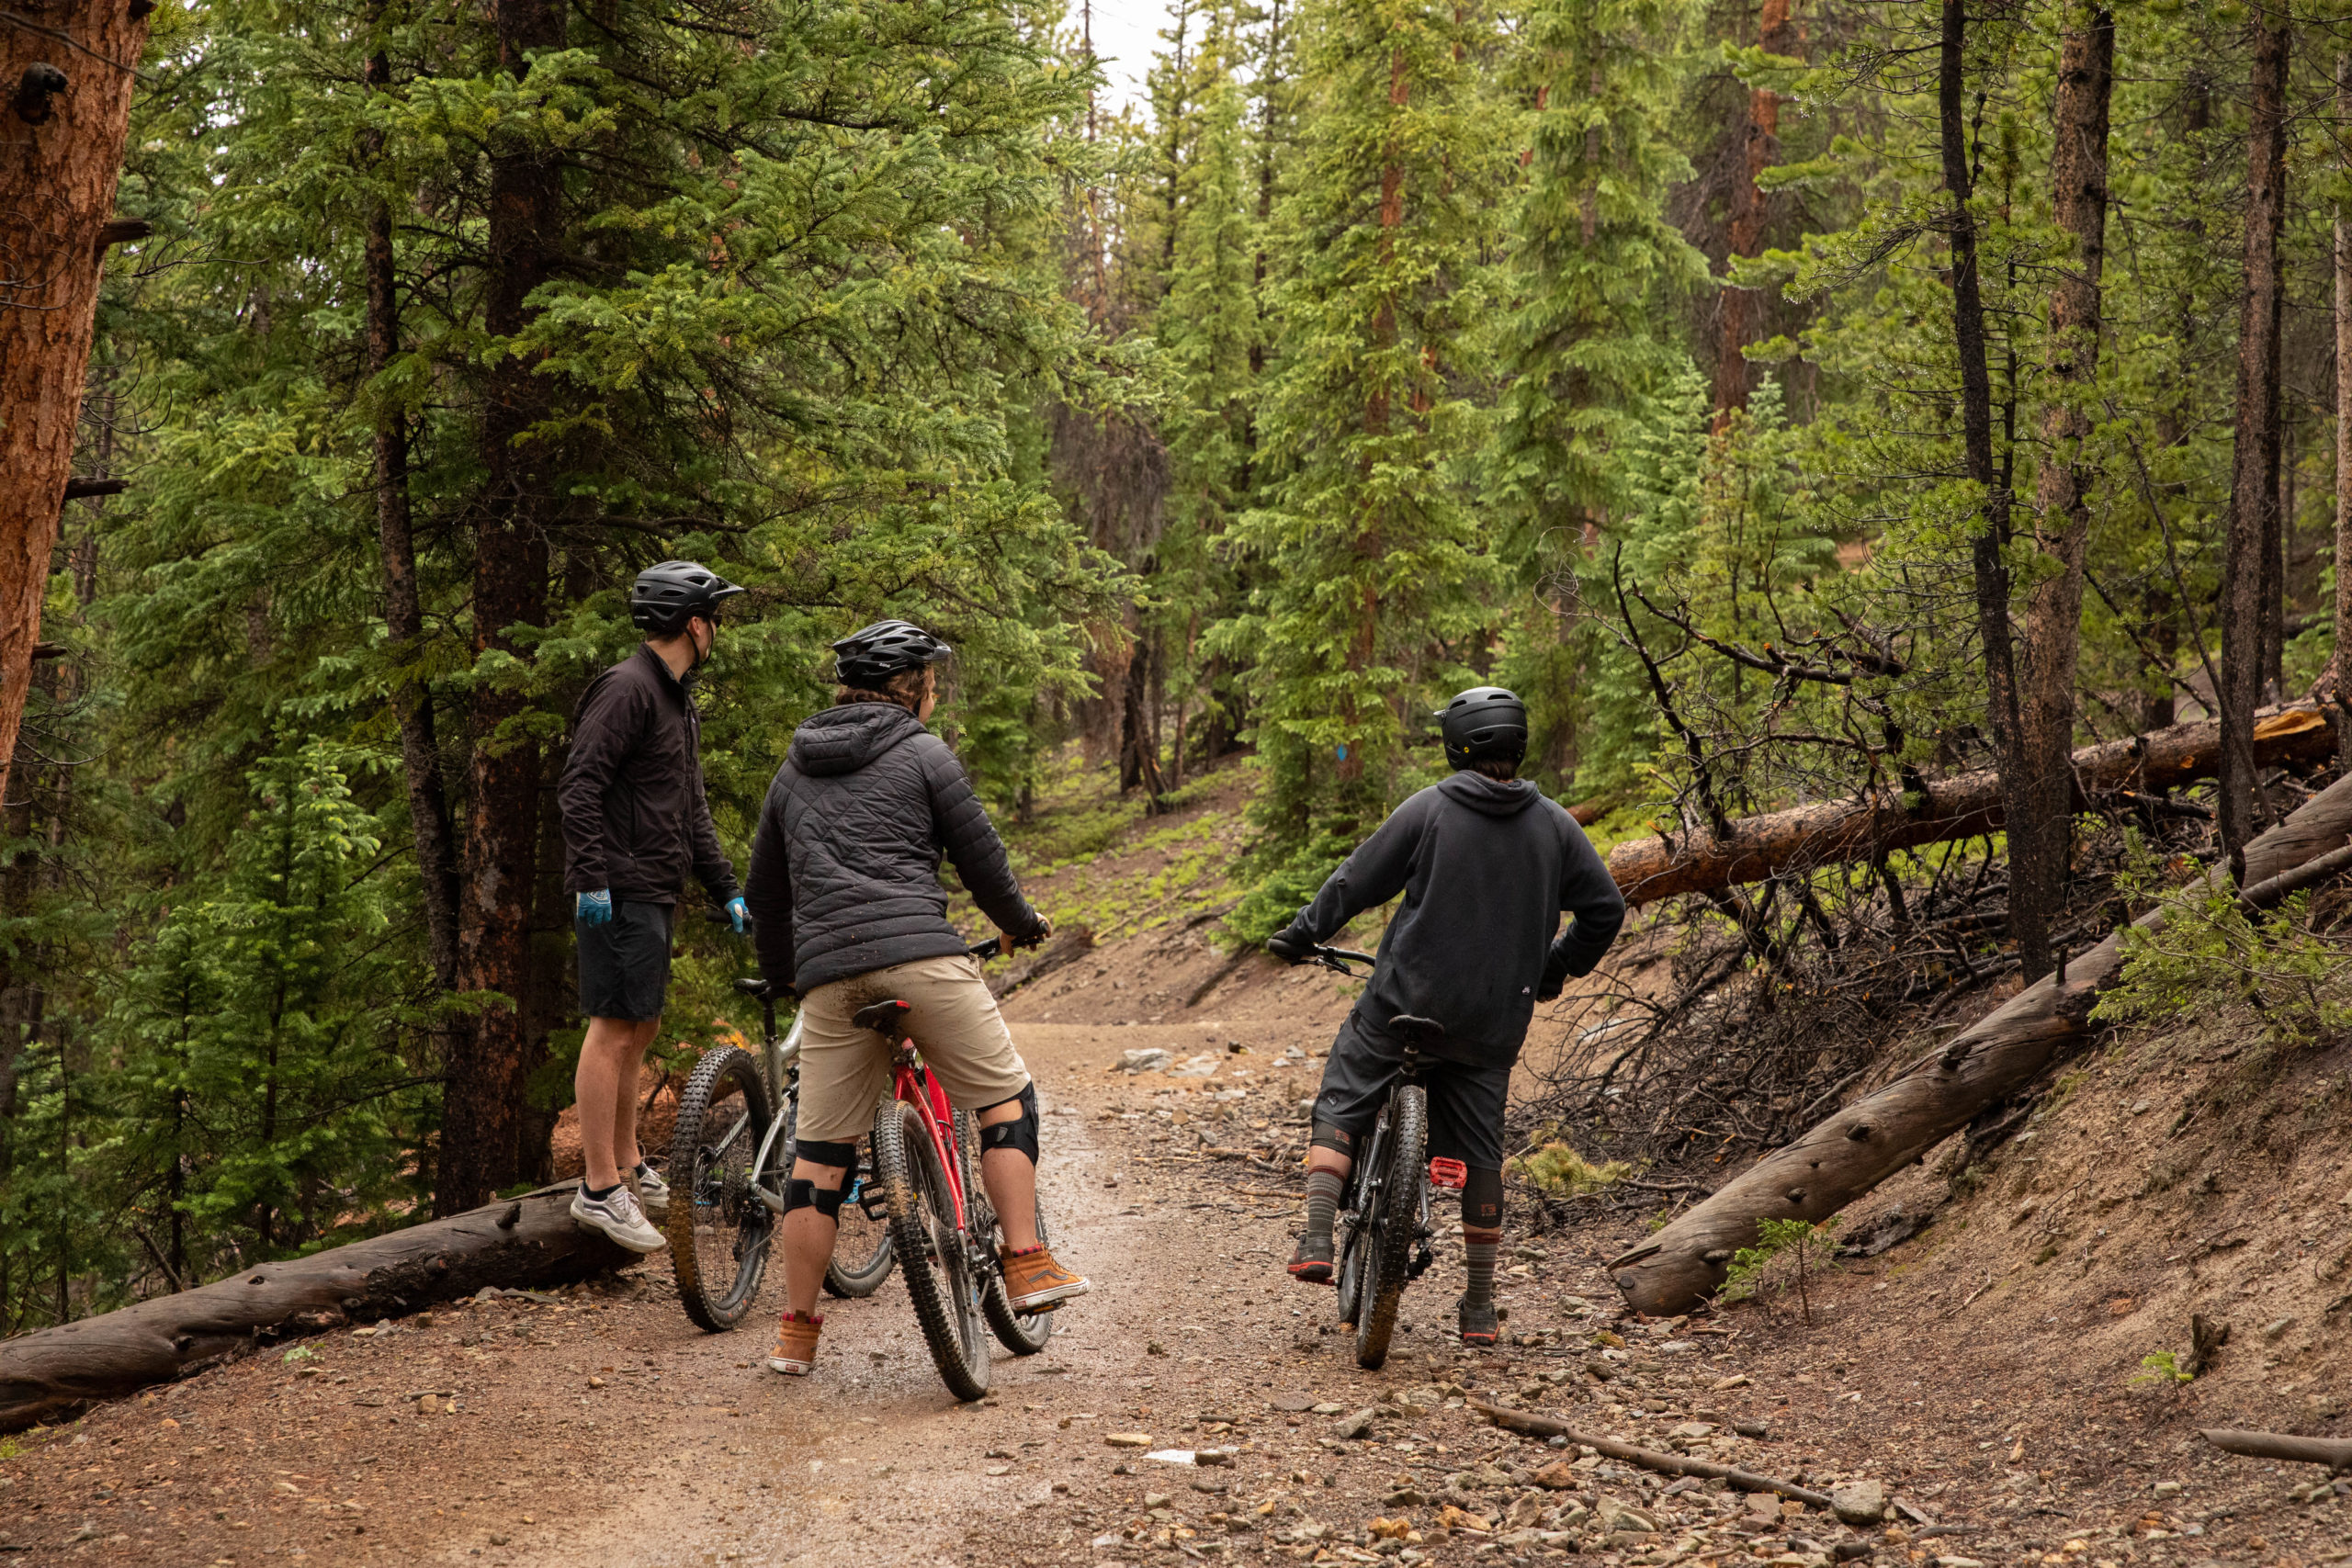 Three men on mountain bikes looking down a dirt trail in the forest